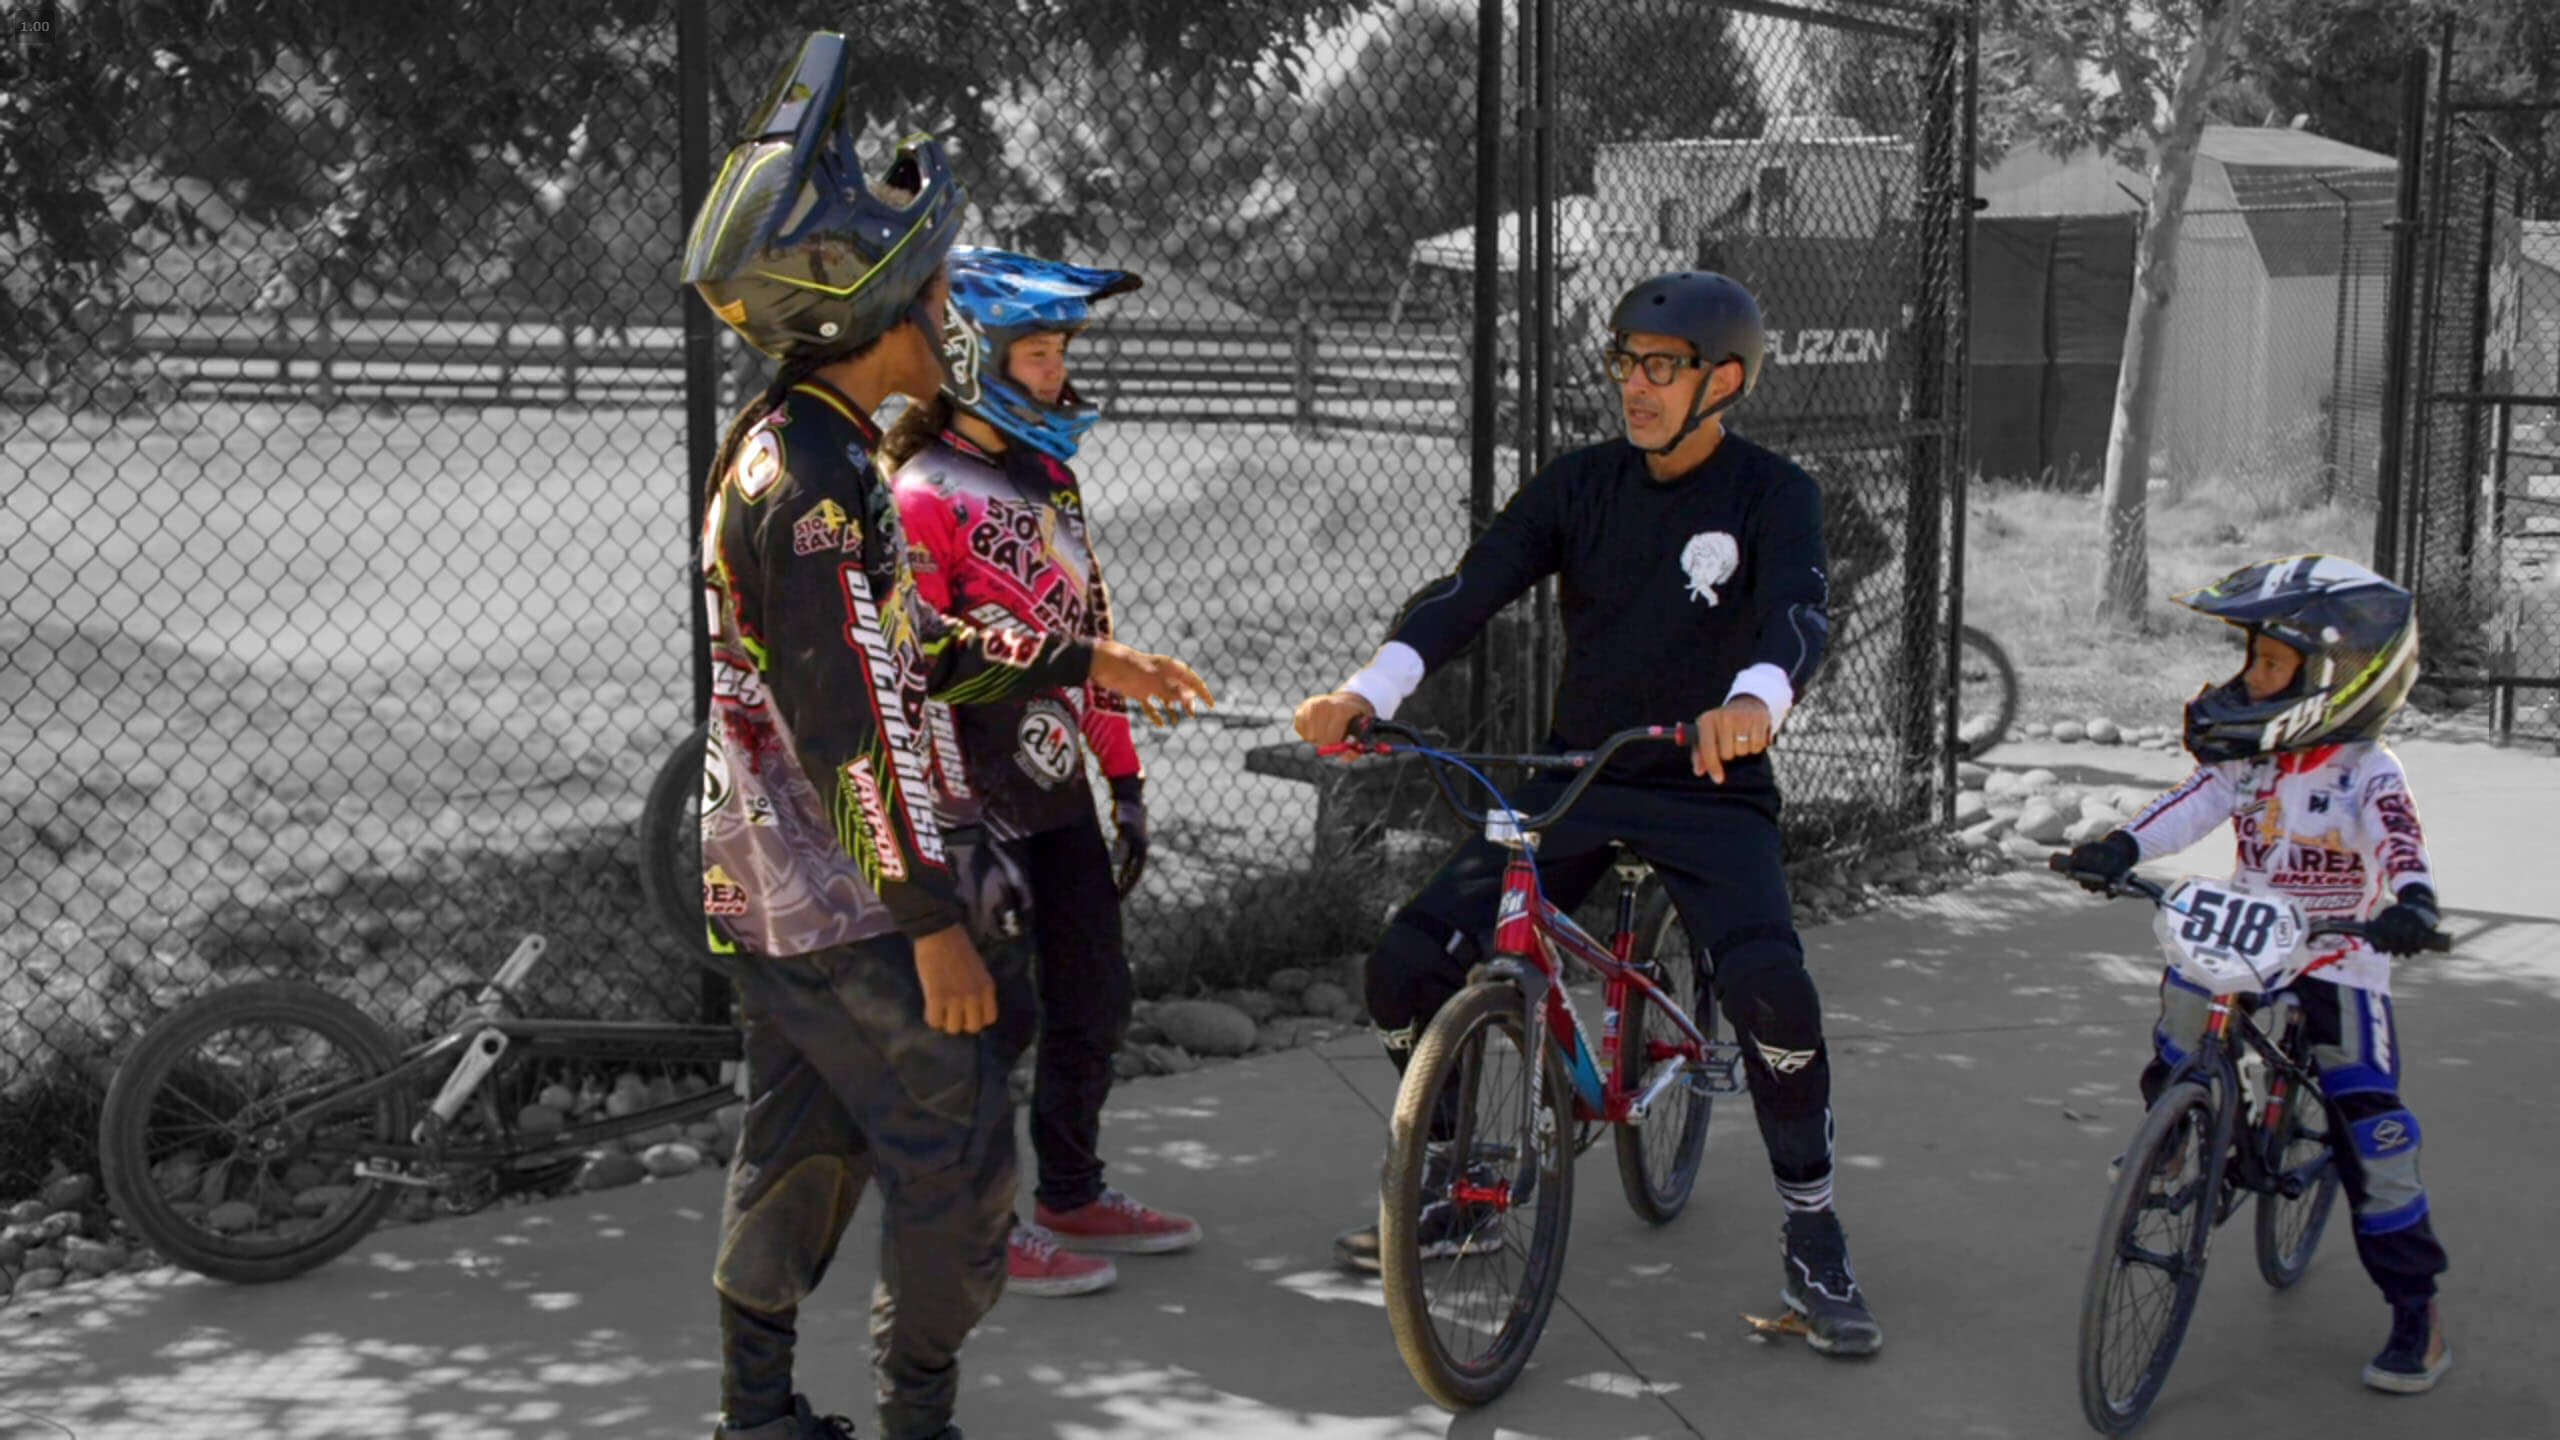 the world according to jeff goldblum featuring bay area bmxers episode season 1 episode 7